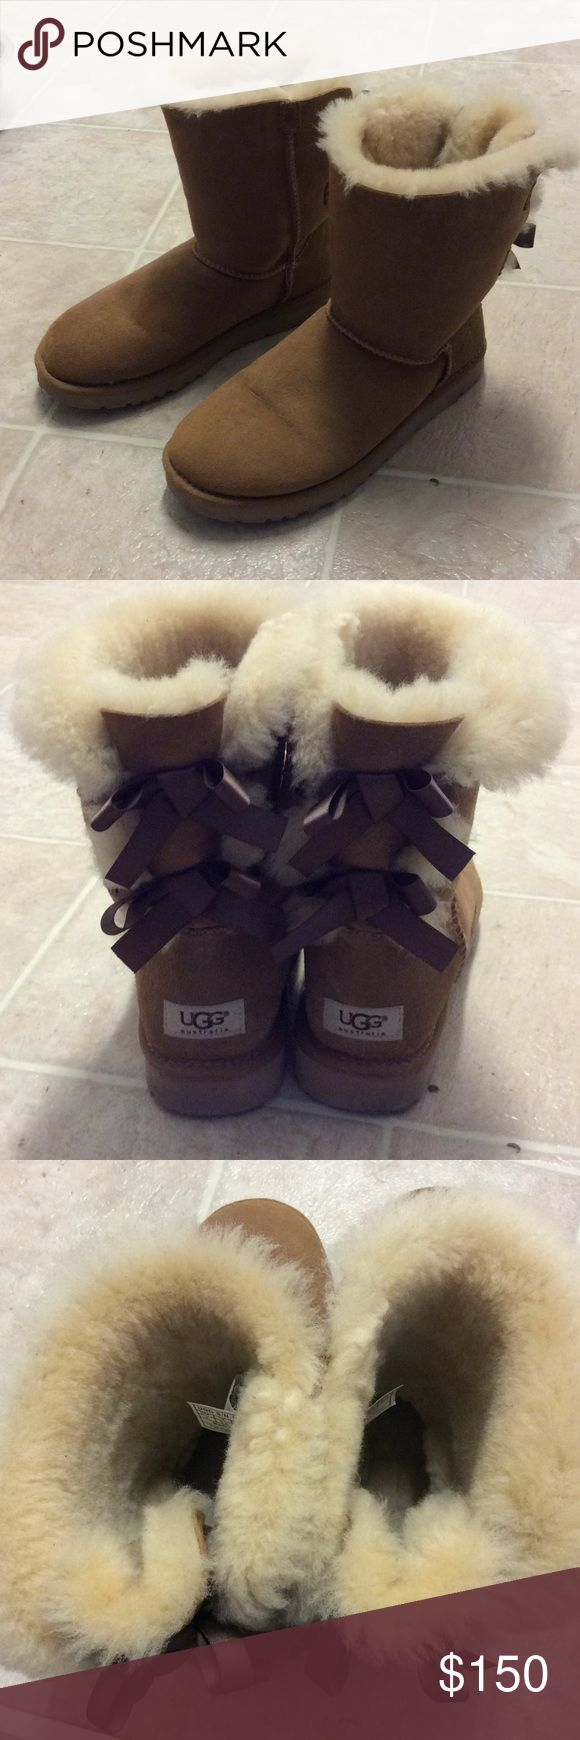 Short Tan Bailey Bows Uggs Size 7 Looking to clean out my closet and found some of my fav Uggs I have to let go. Short Tan Bailey Bows Uggs Size 7. Gently worn. No smell.  Original price tag $205 asking 150 or best offer. NO TRADES. AUTHENTIC UGGS UGG Shoes Winter & Rain Boots